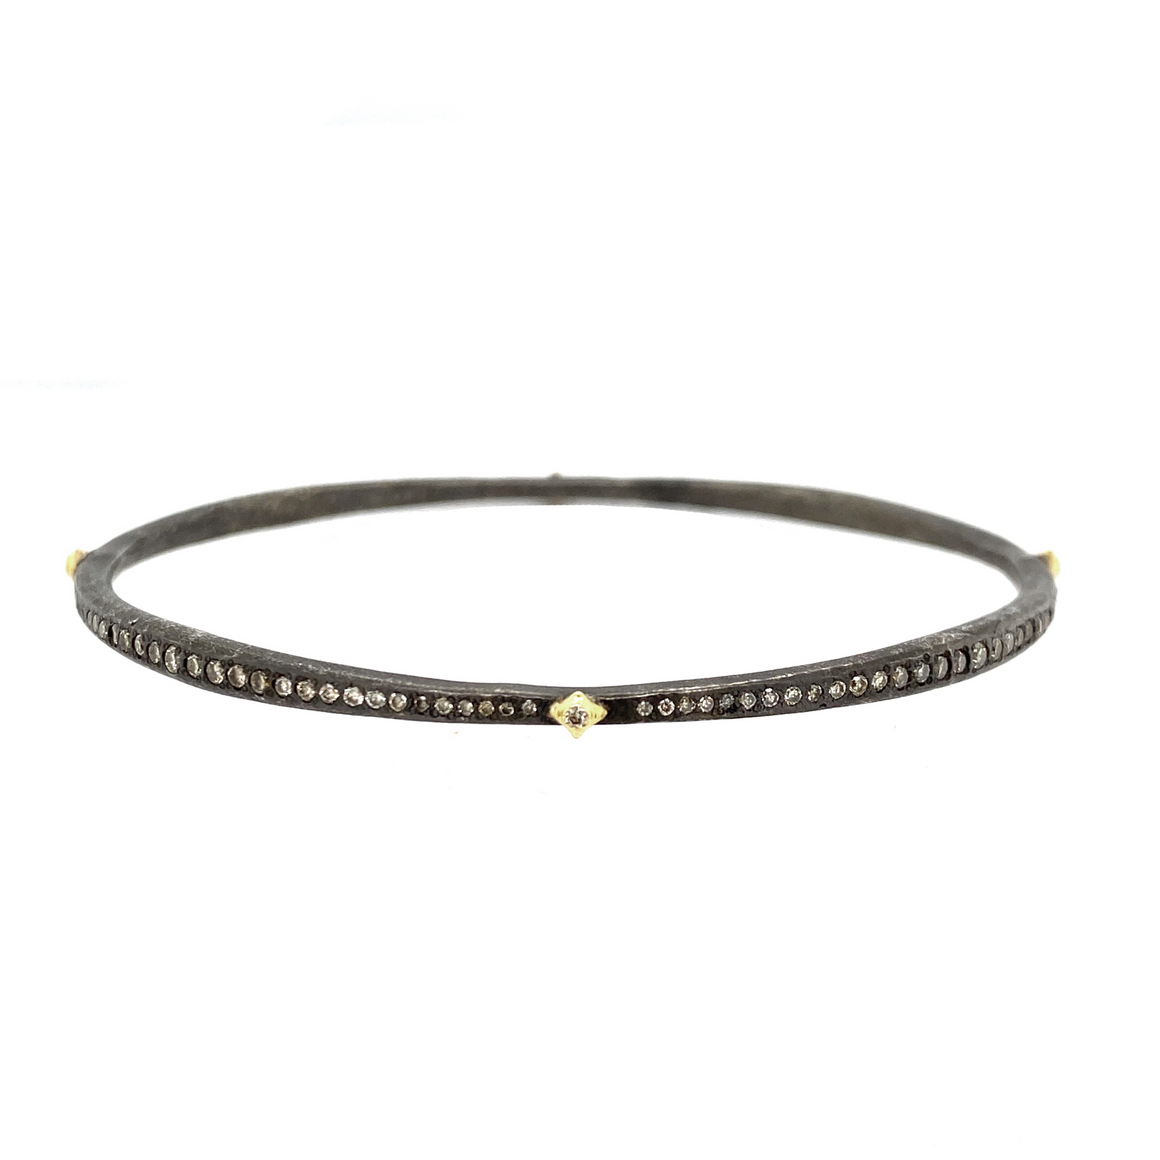 Old World Eternity Bangle - Lesley Ann Jewels